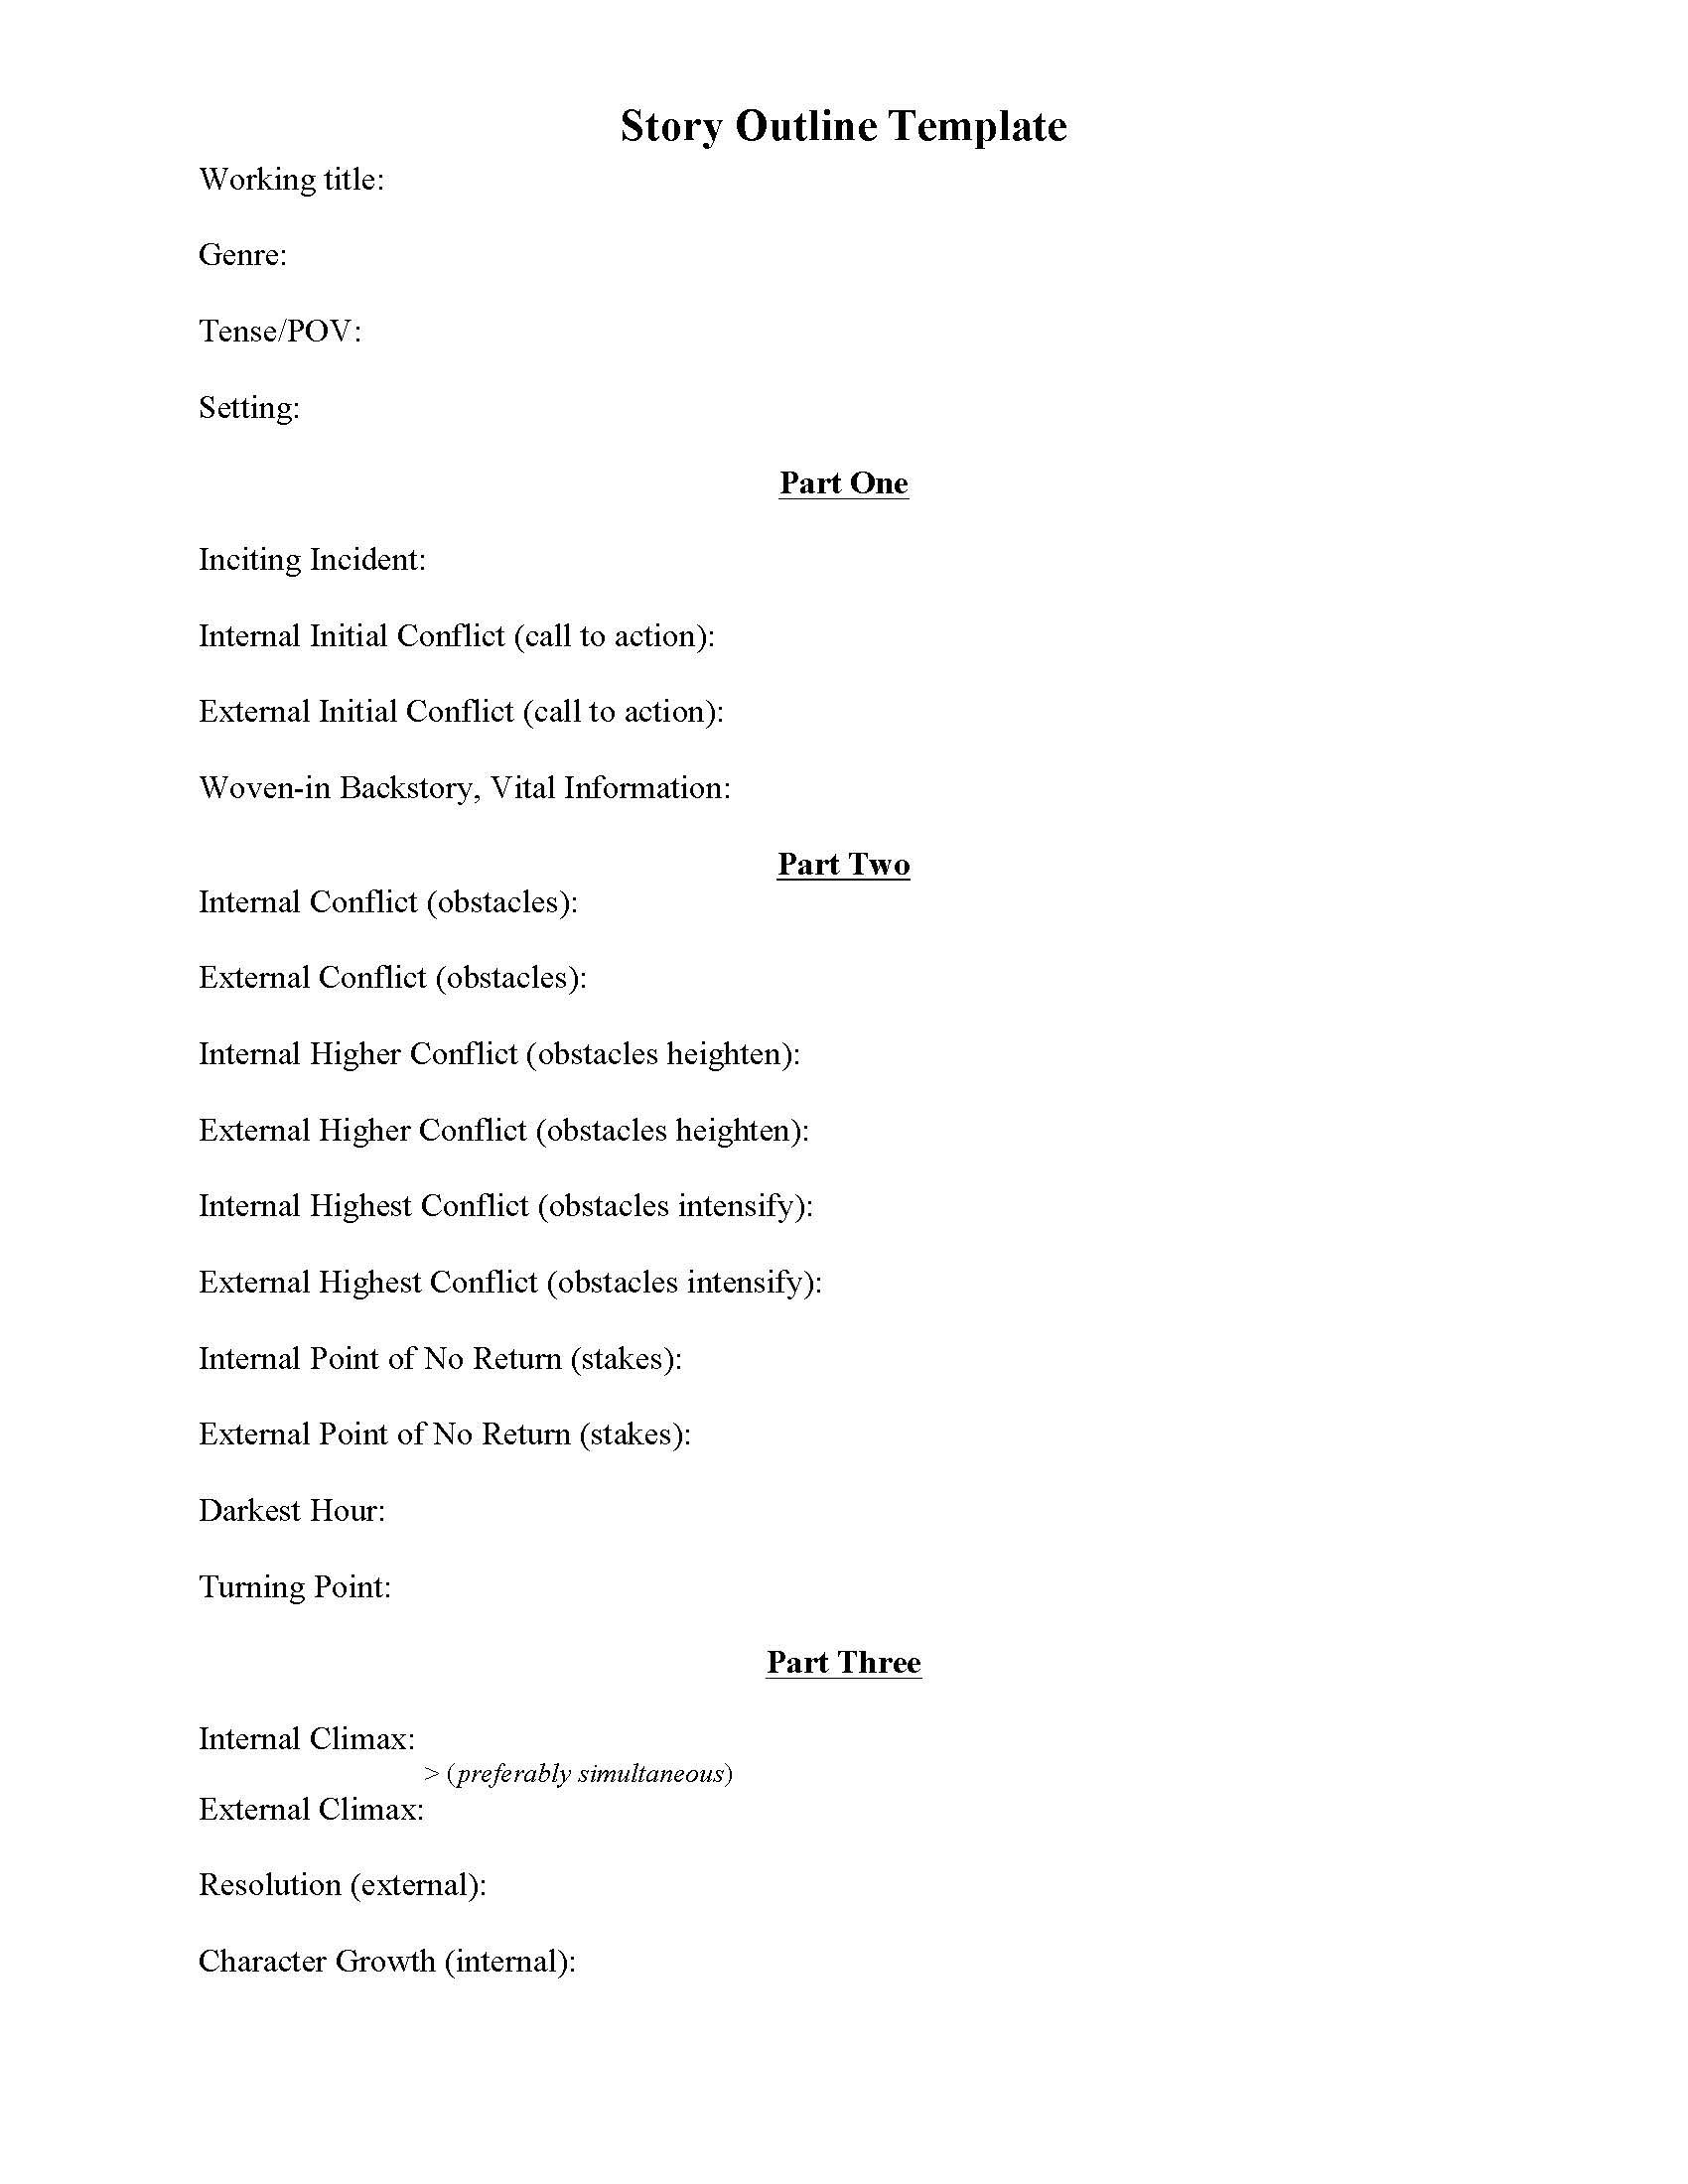 Story Outline Template Preview Jpg 1 700 2 200 Pixels Writing Outline Writing A Book Outline Writing Words